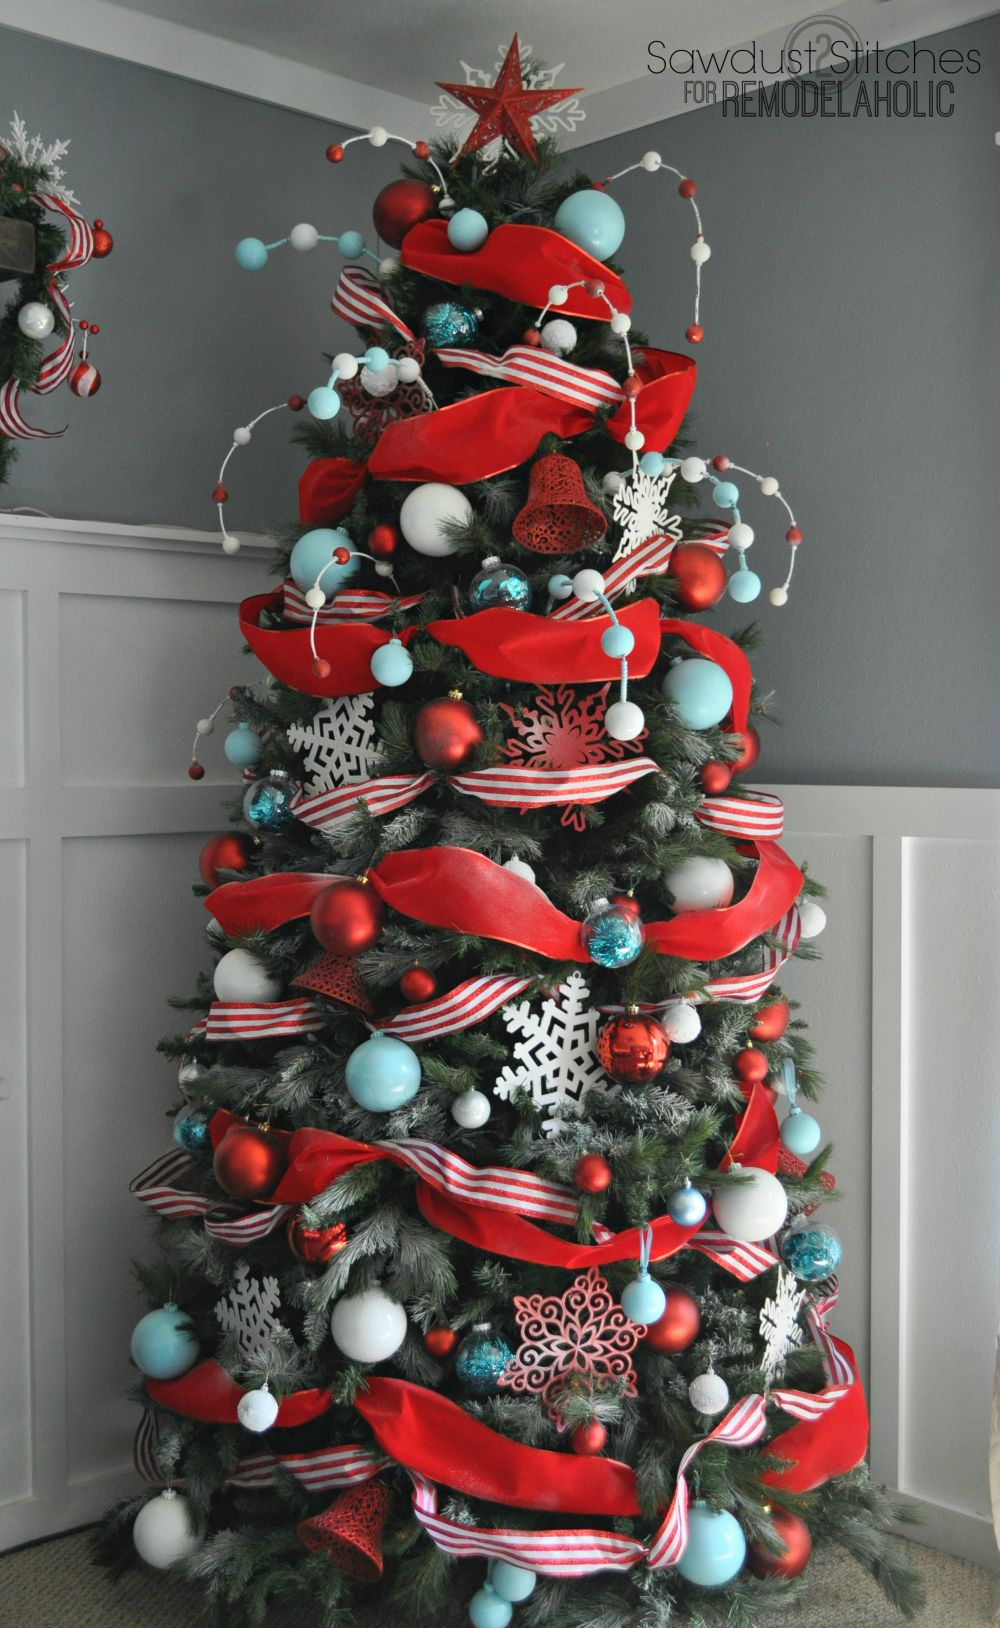 All The Wonderful Christmas Tree Ideas You Need For A Wonderful Holiday images 21